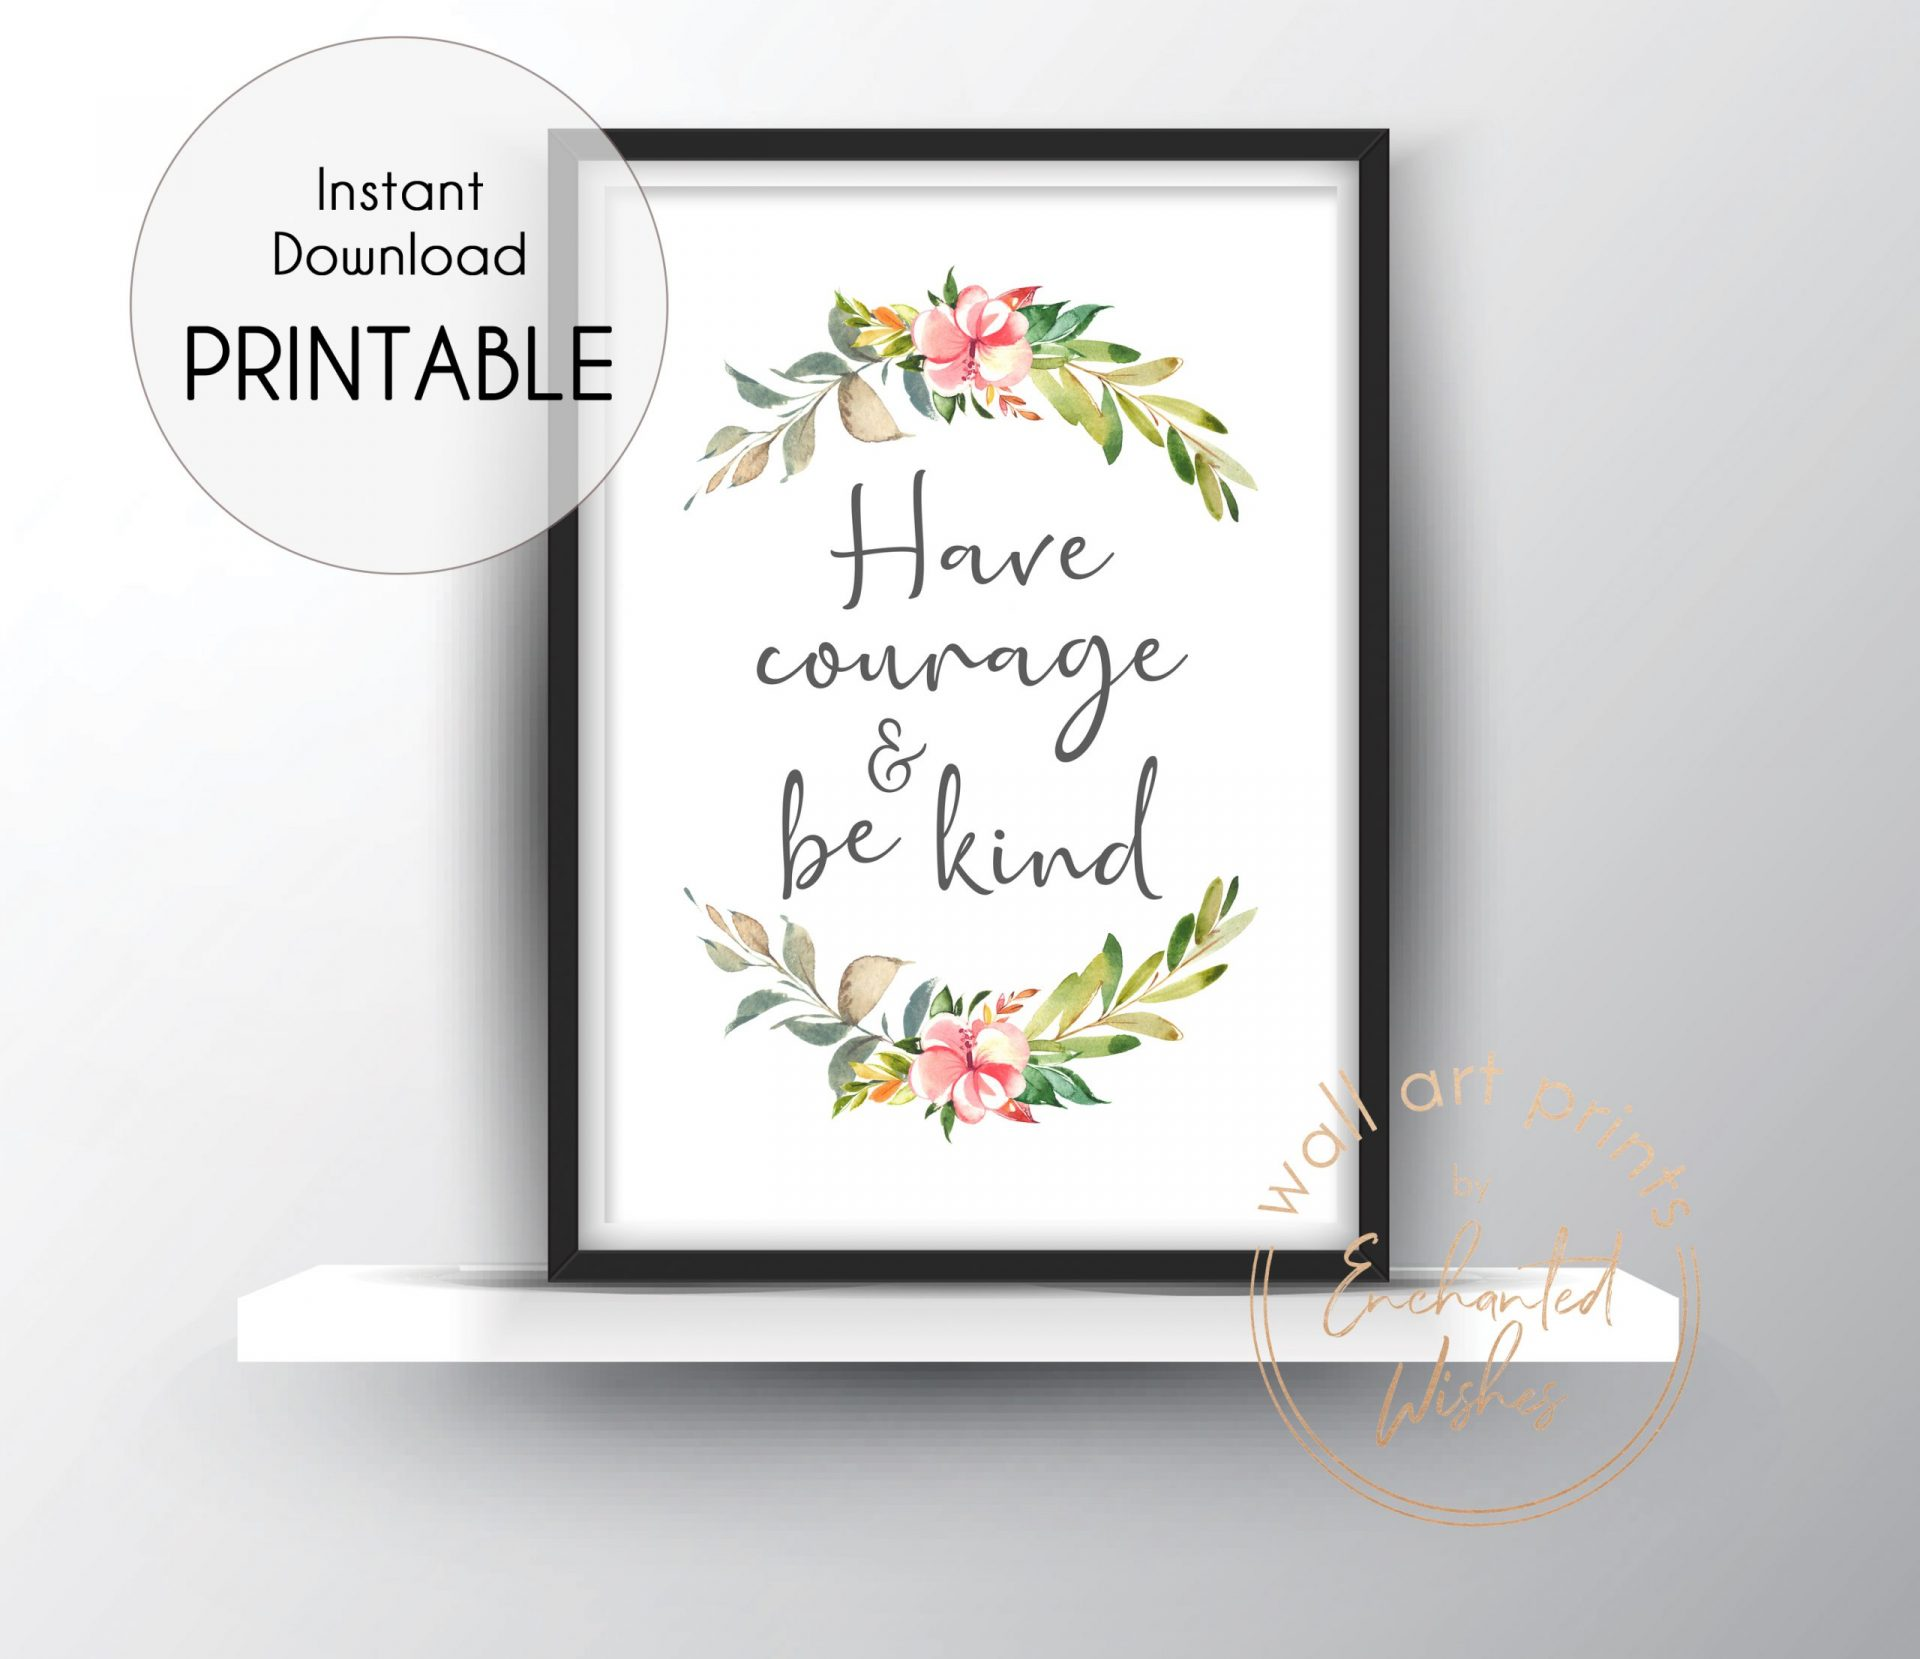 Have courage & be kind printable